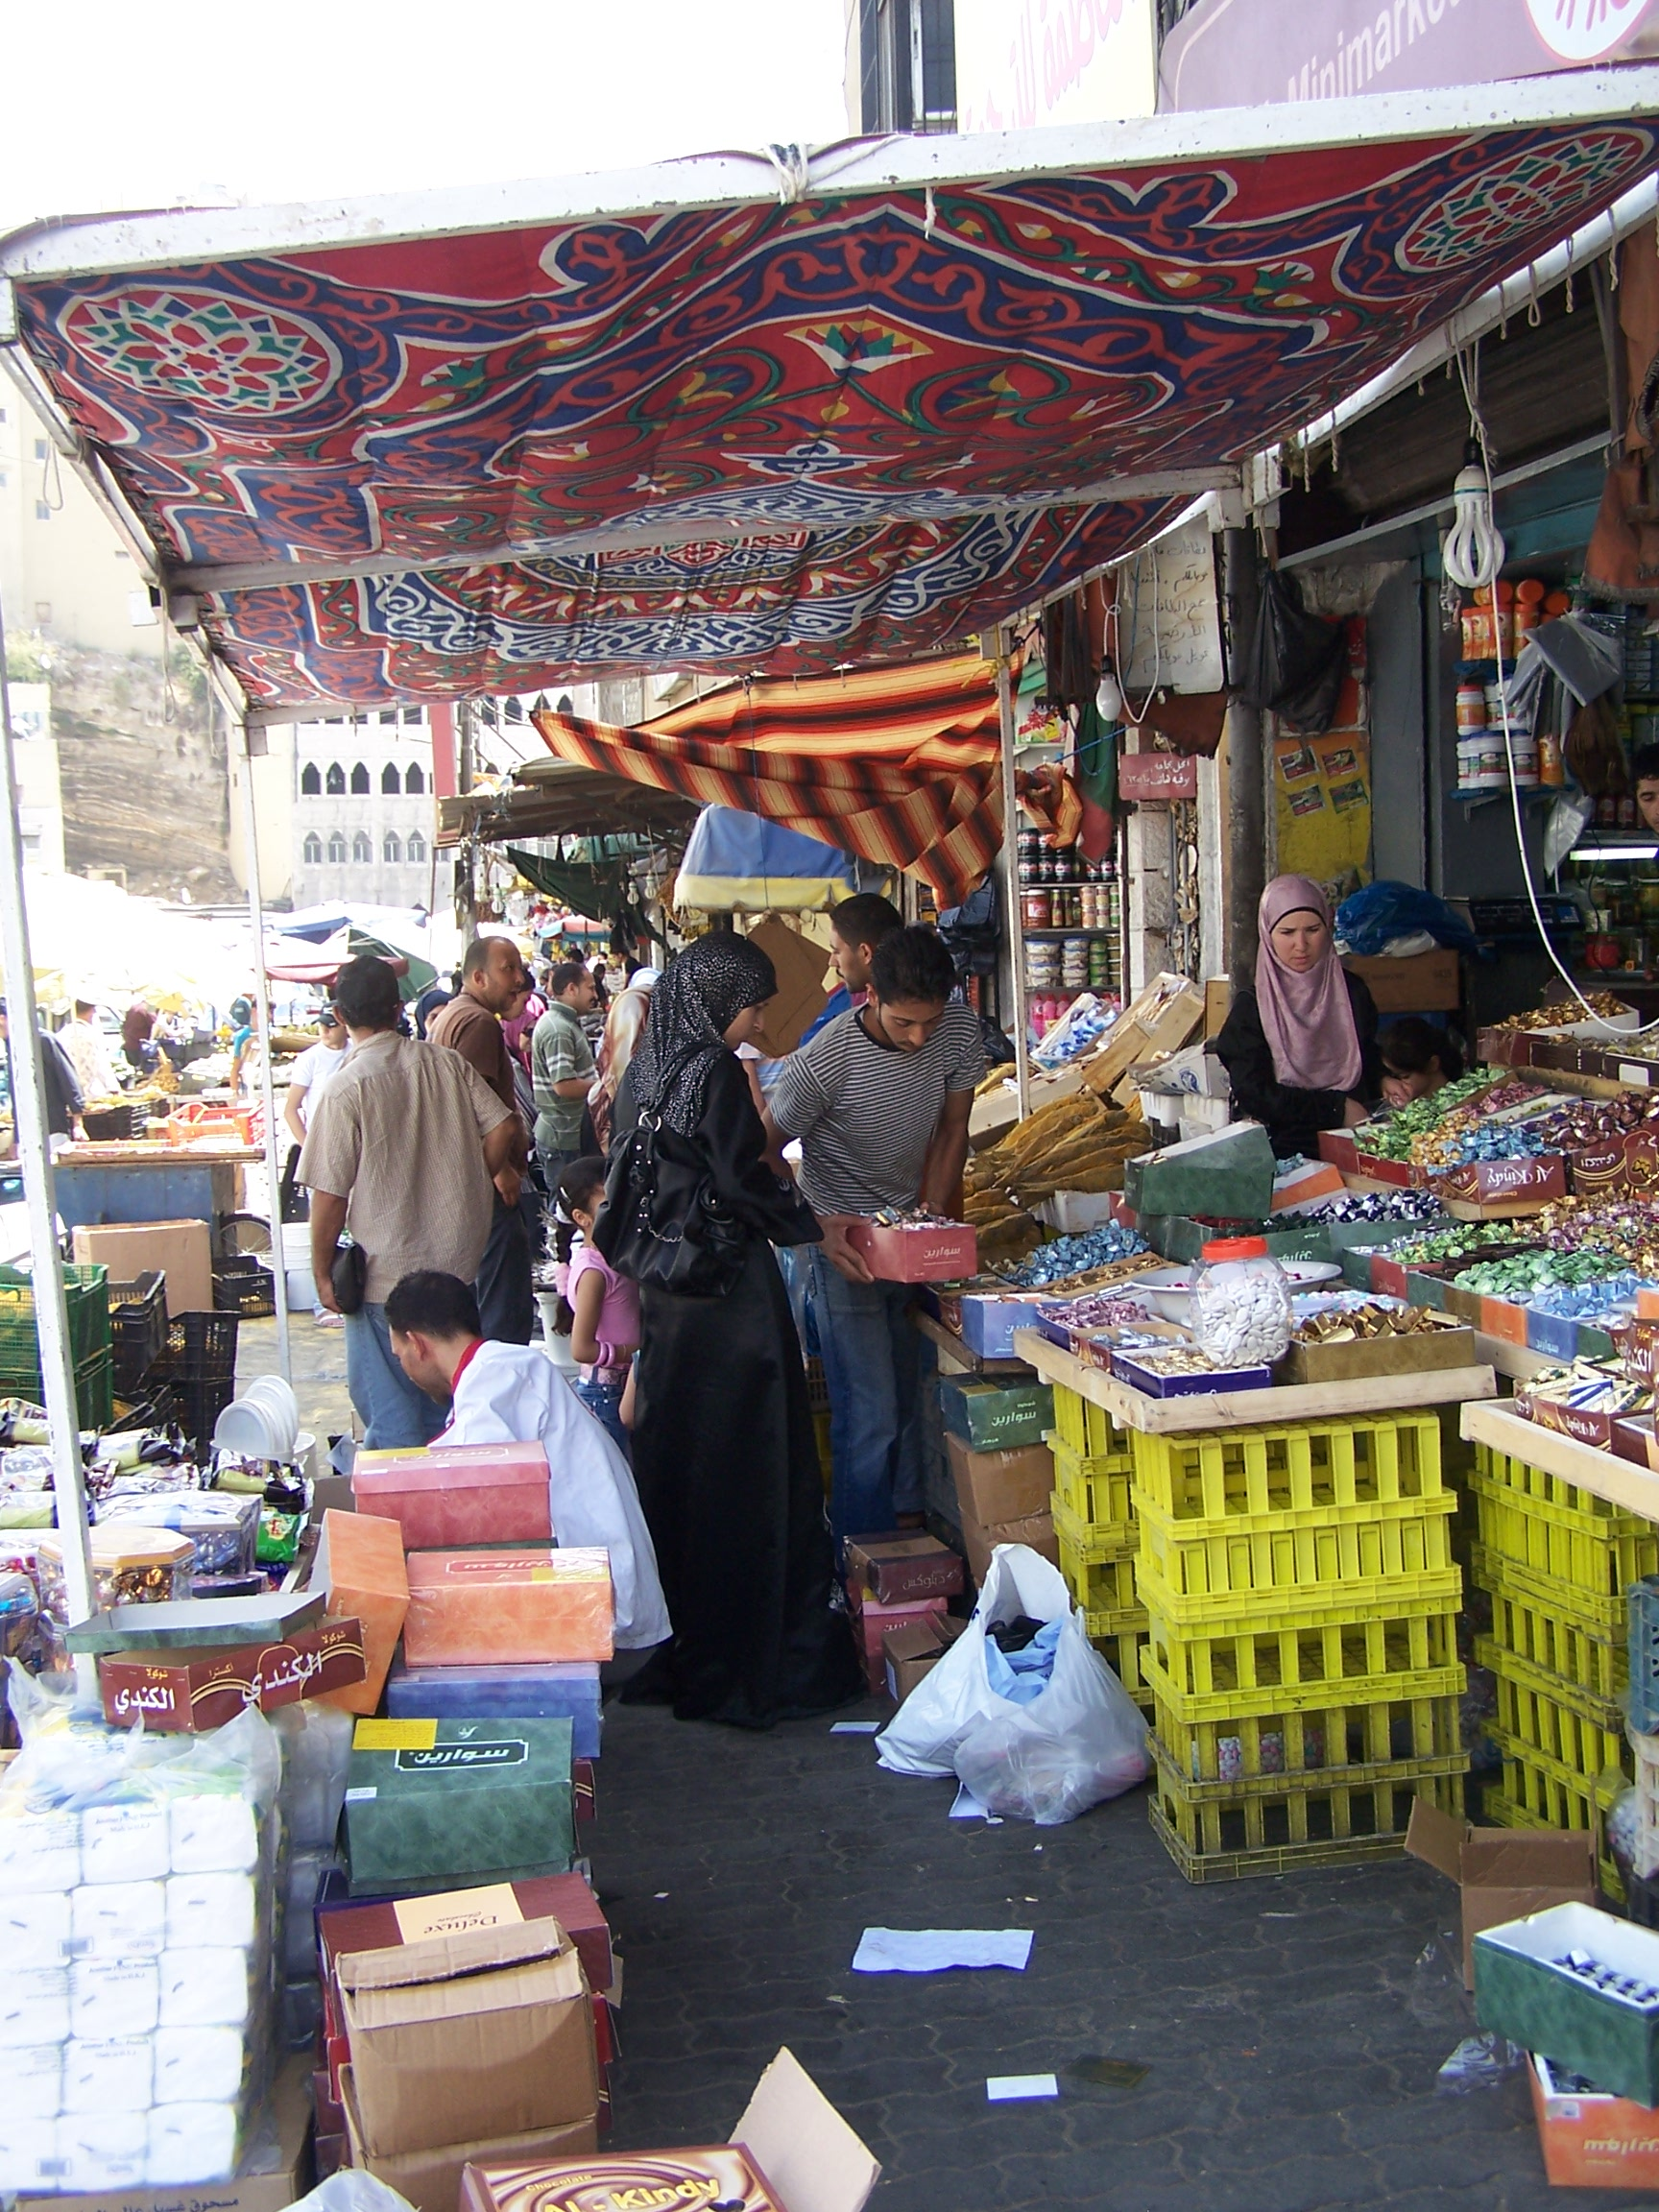 Shoppers at an outdoor market in Amman, Jordan, searched for items for the feast of Eid-u-Fitr, to celebrate the end of Ramadan. Photo by Carol.